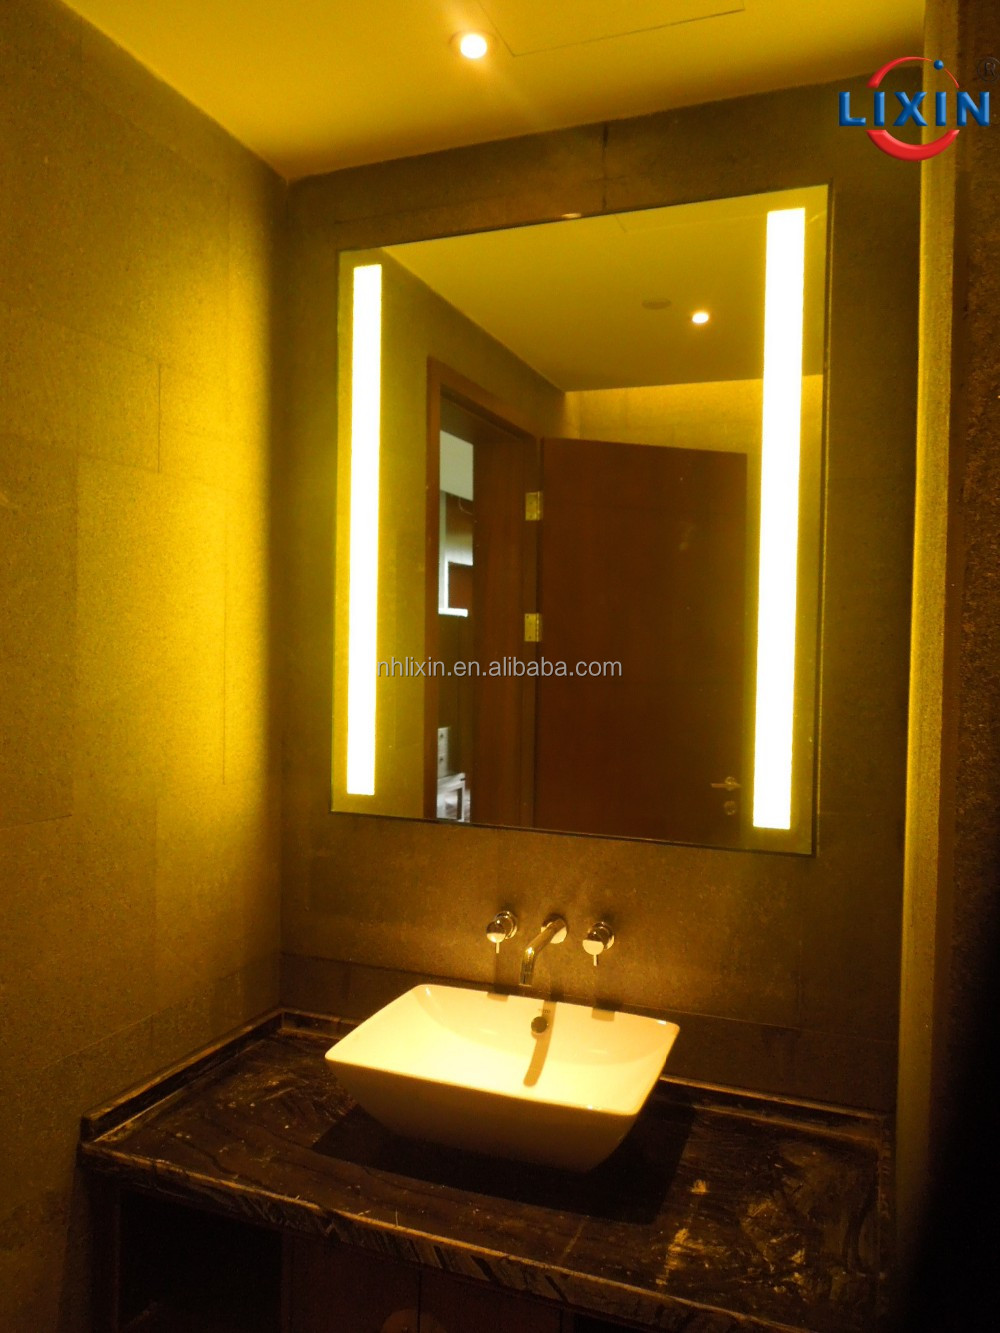 Hotel Bathroom Mirrors  Hotel Bathroom Mirrors Suppliers and Manufacturers at Alibaba com. Hotel Bathroom Mirrors  Hotel Bathroom Mirrors Suppliers and